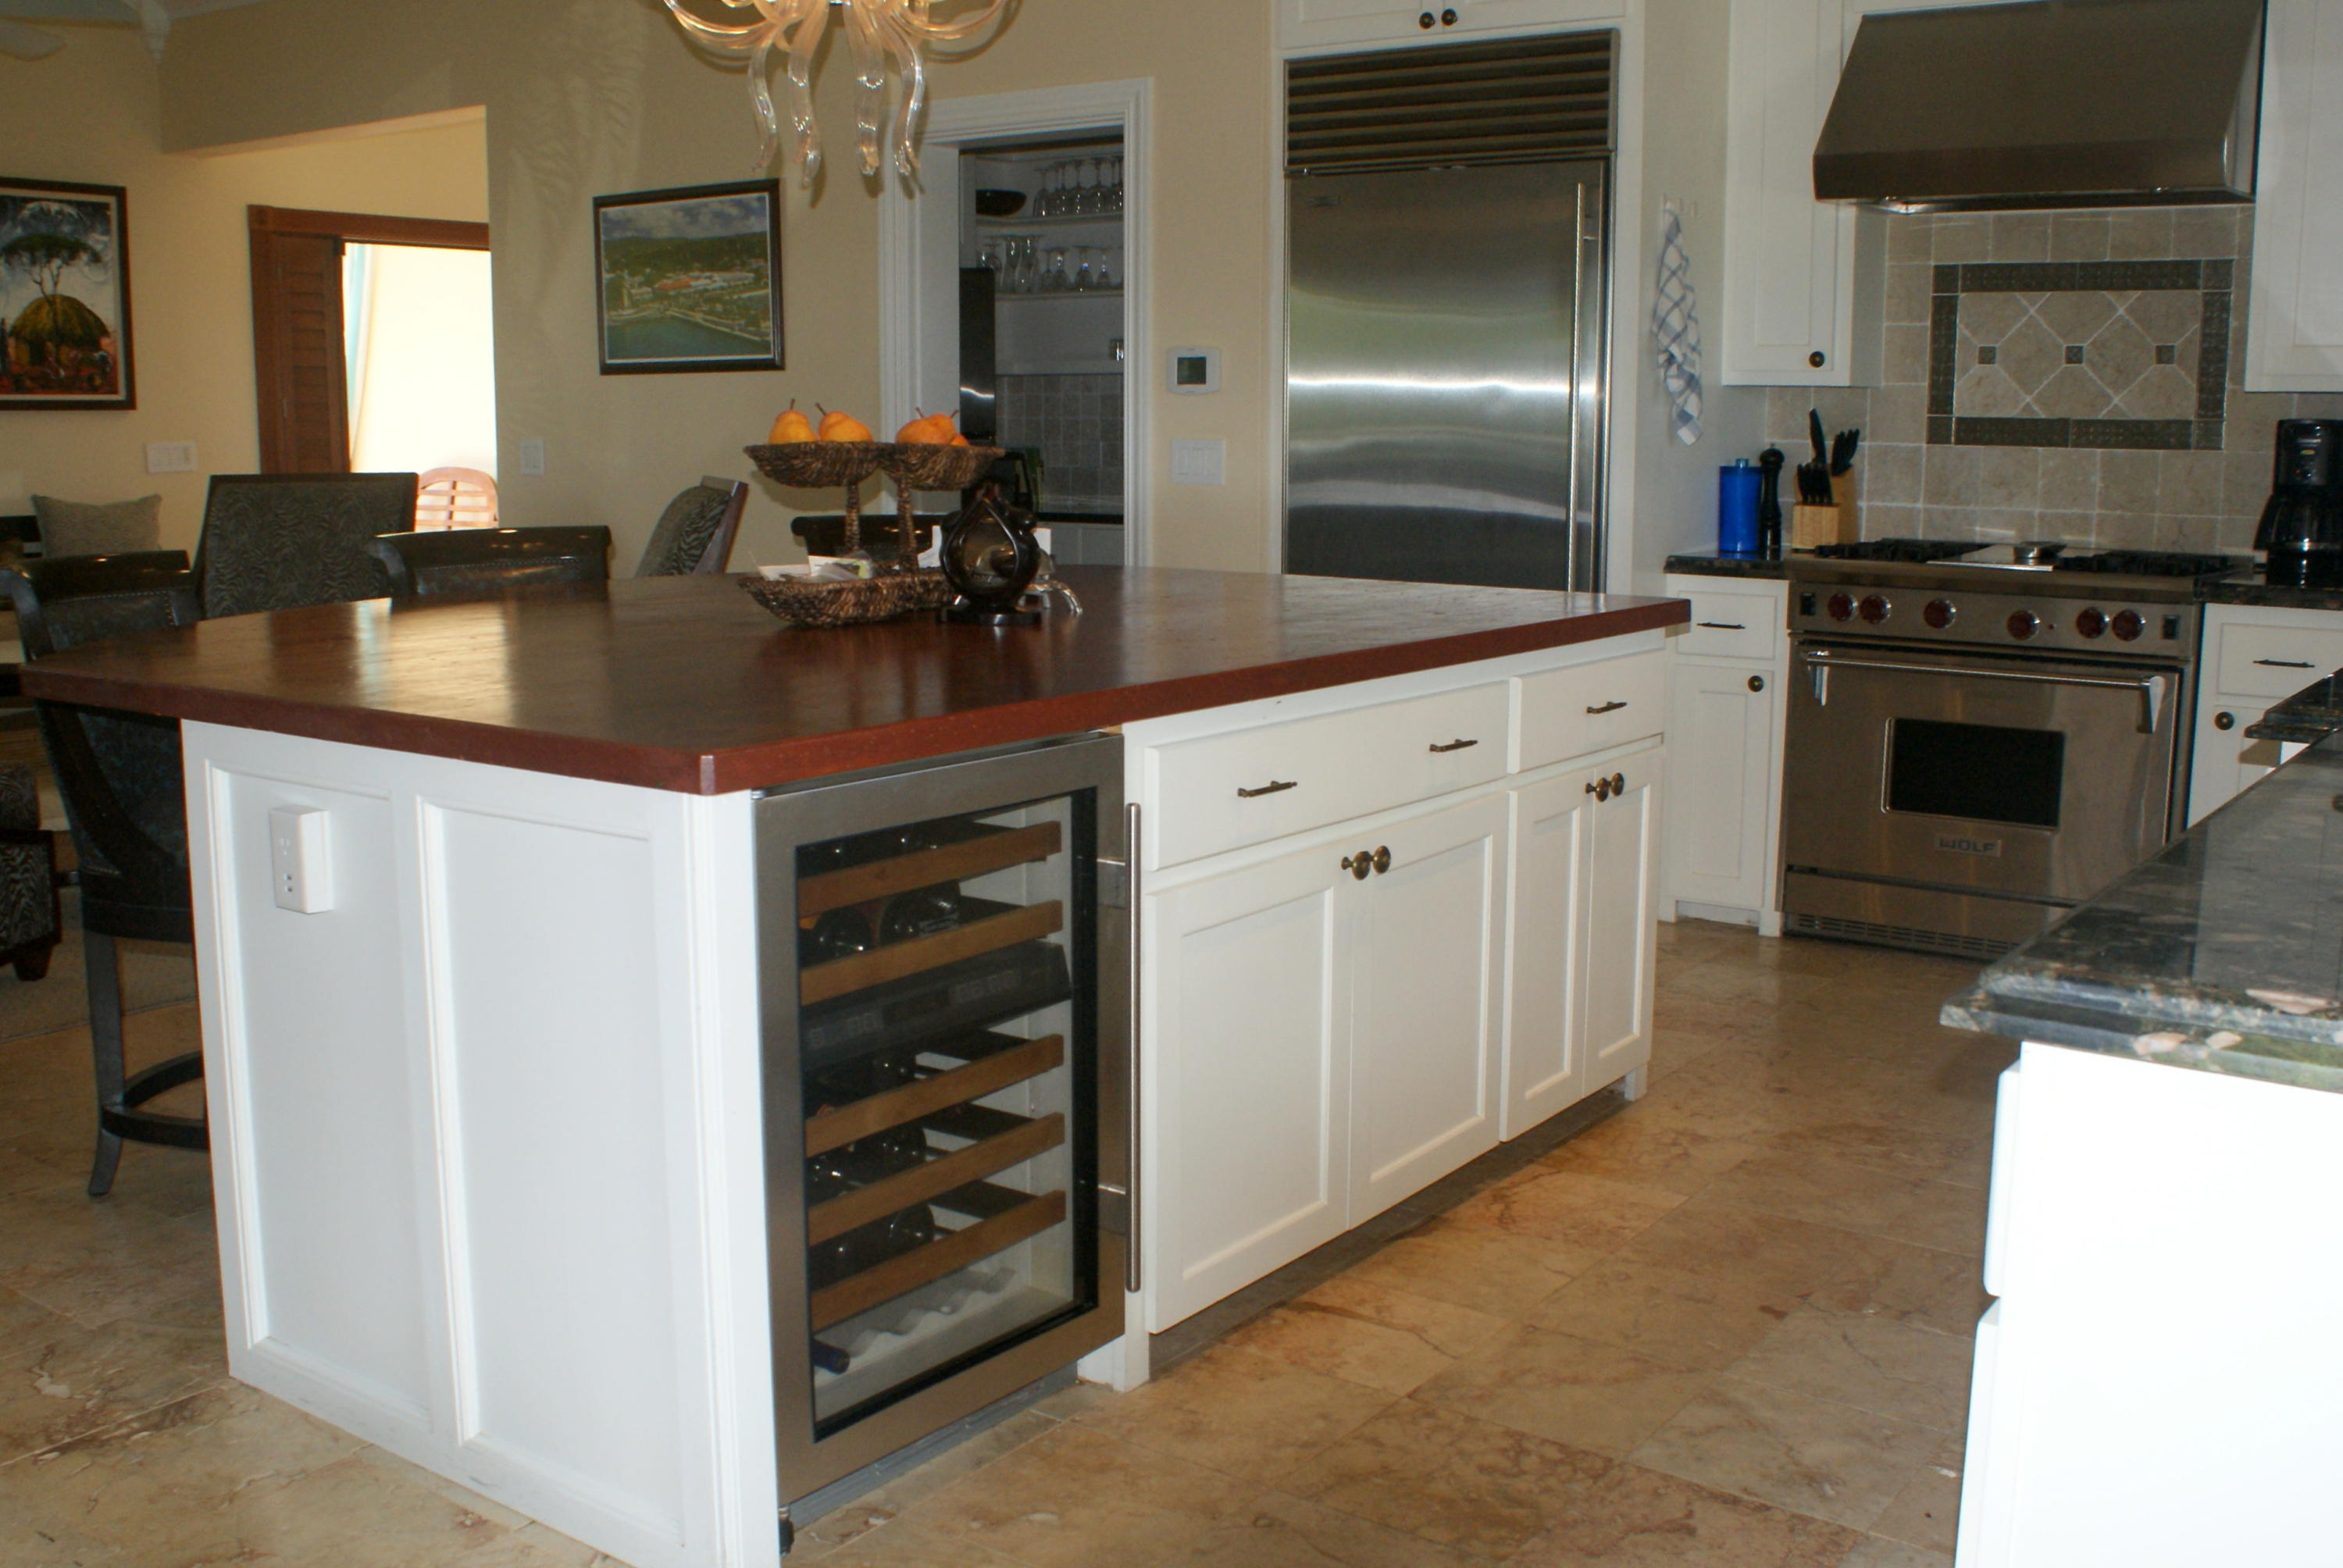 Large Island with Wine Refrigerator